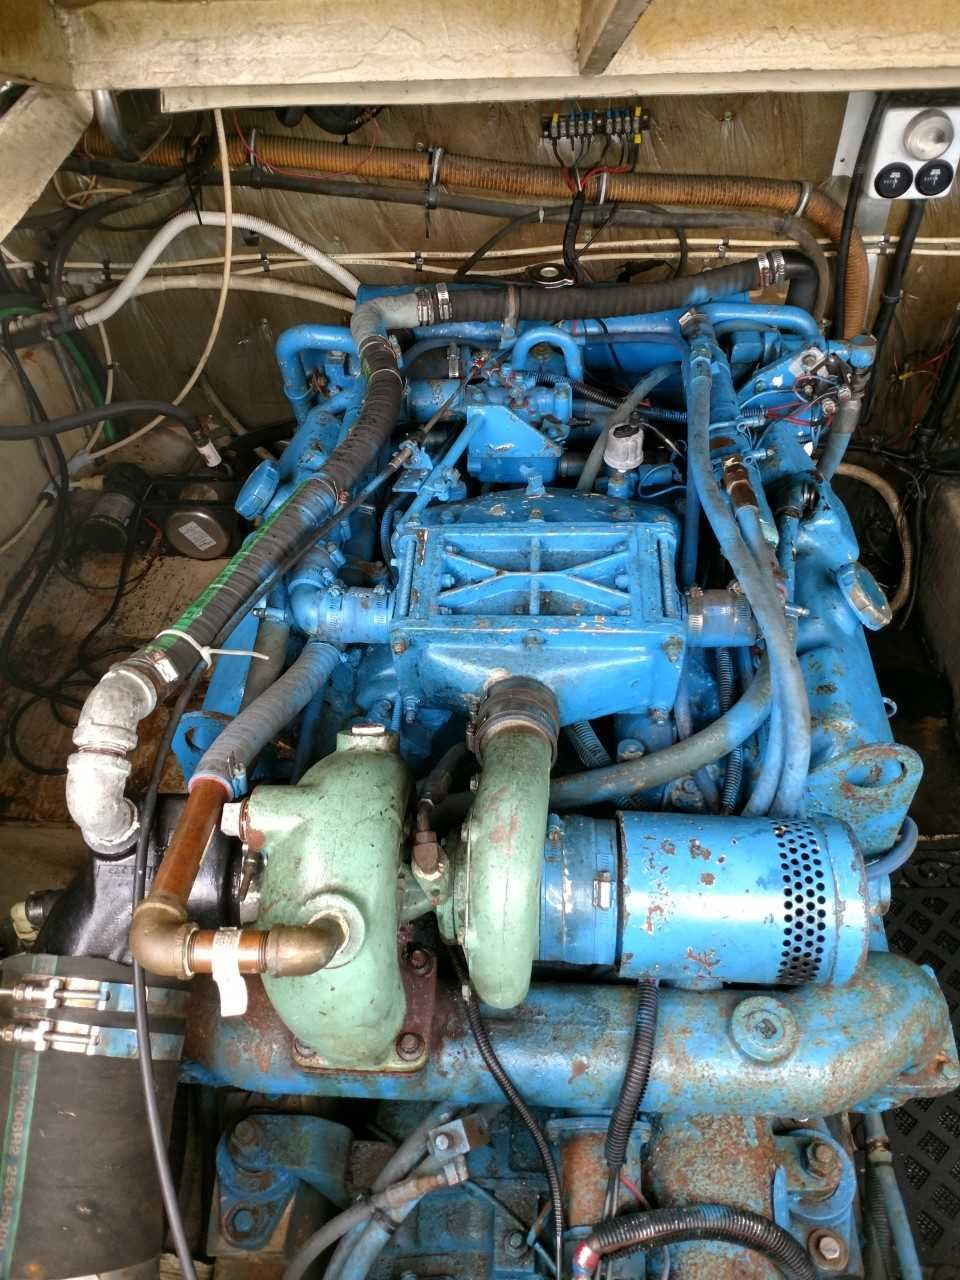 8.2T Used Marine Engines